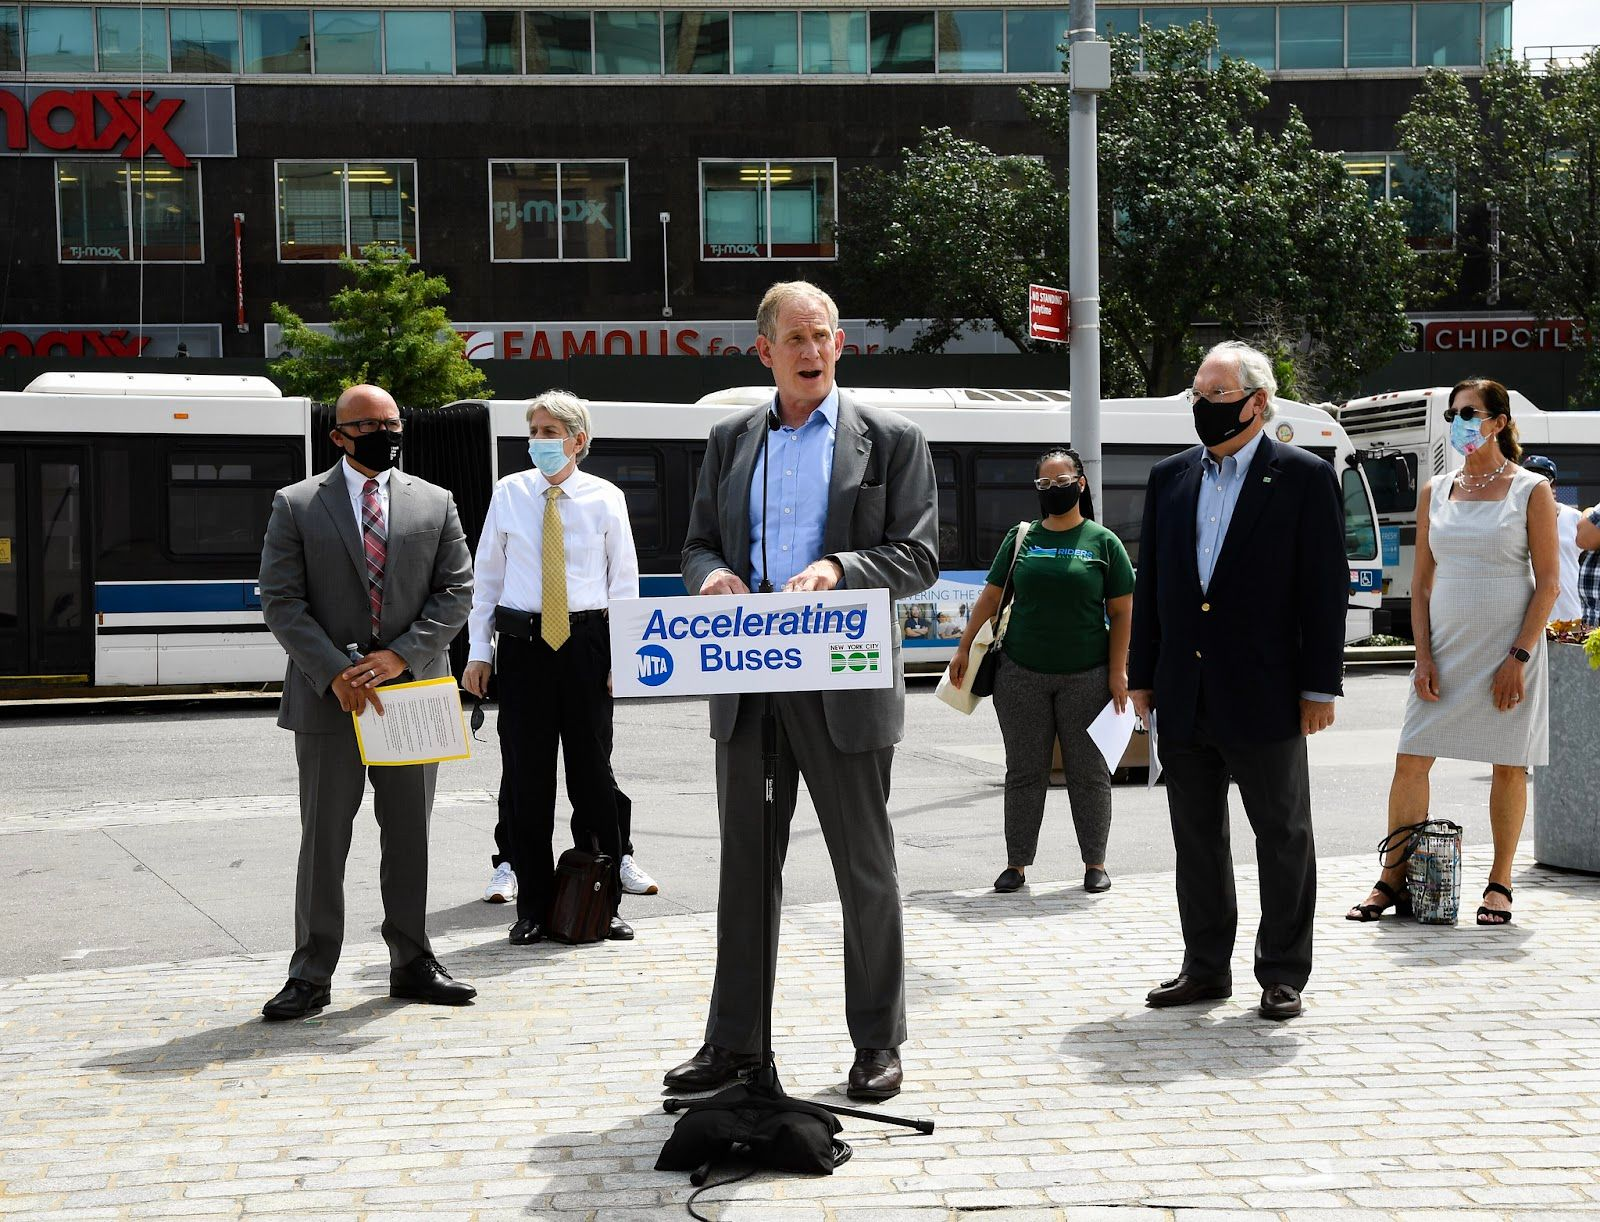 MTA Announces Bus Improvements, with Network Redesigns Restarting This Fall